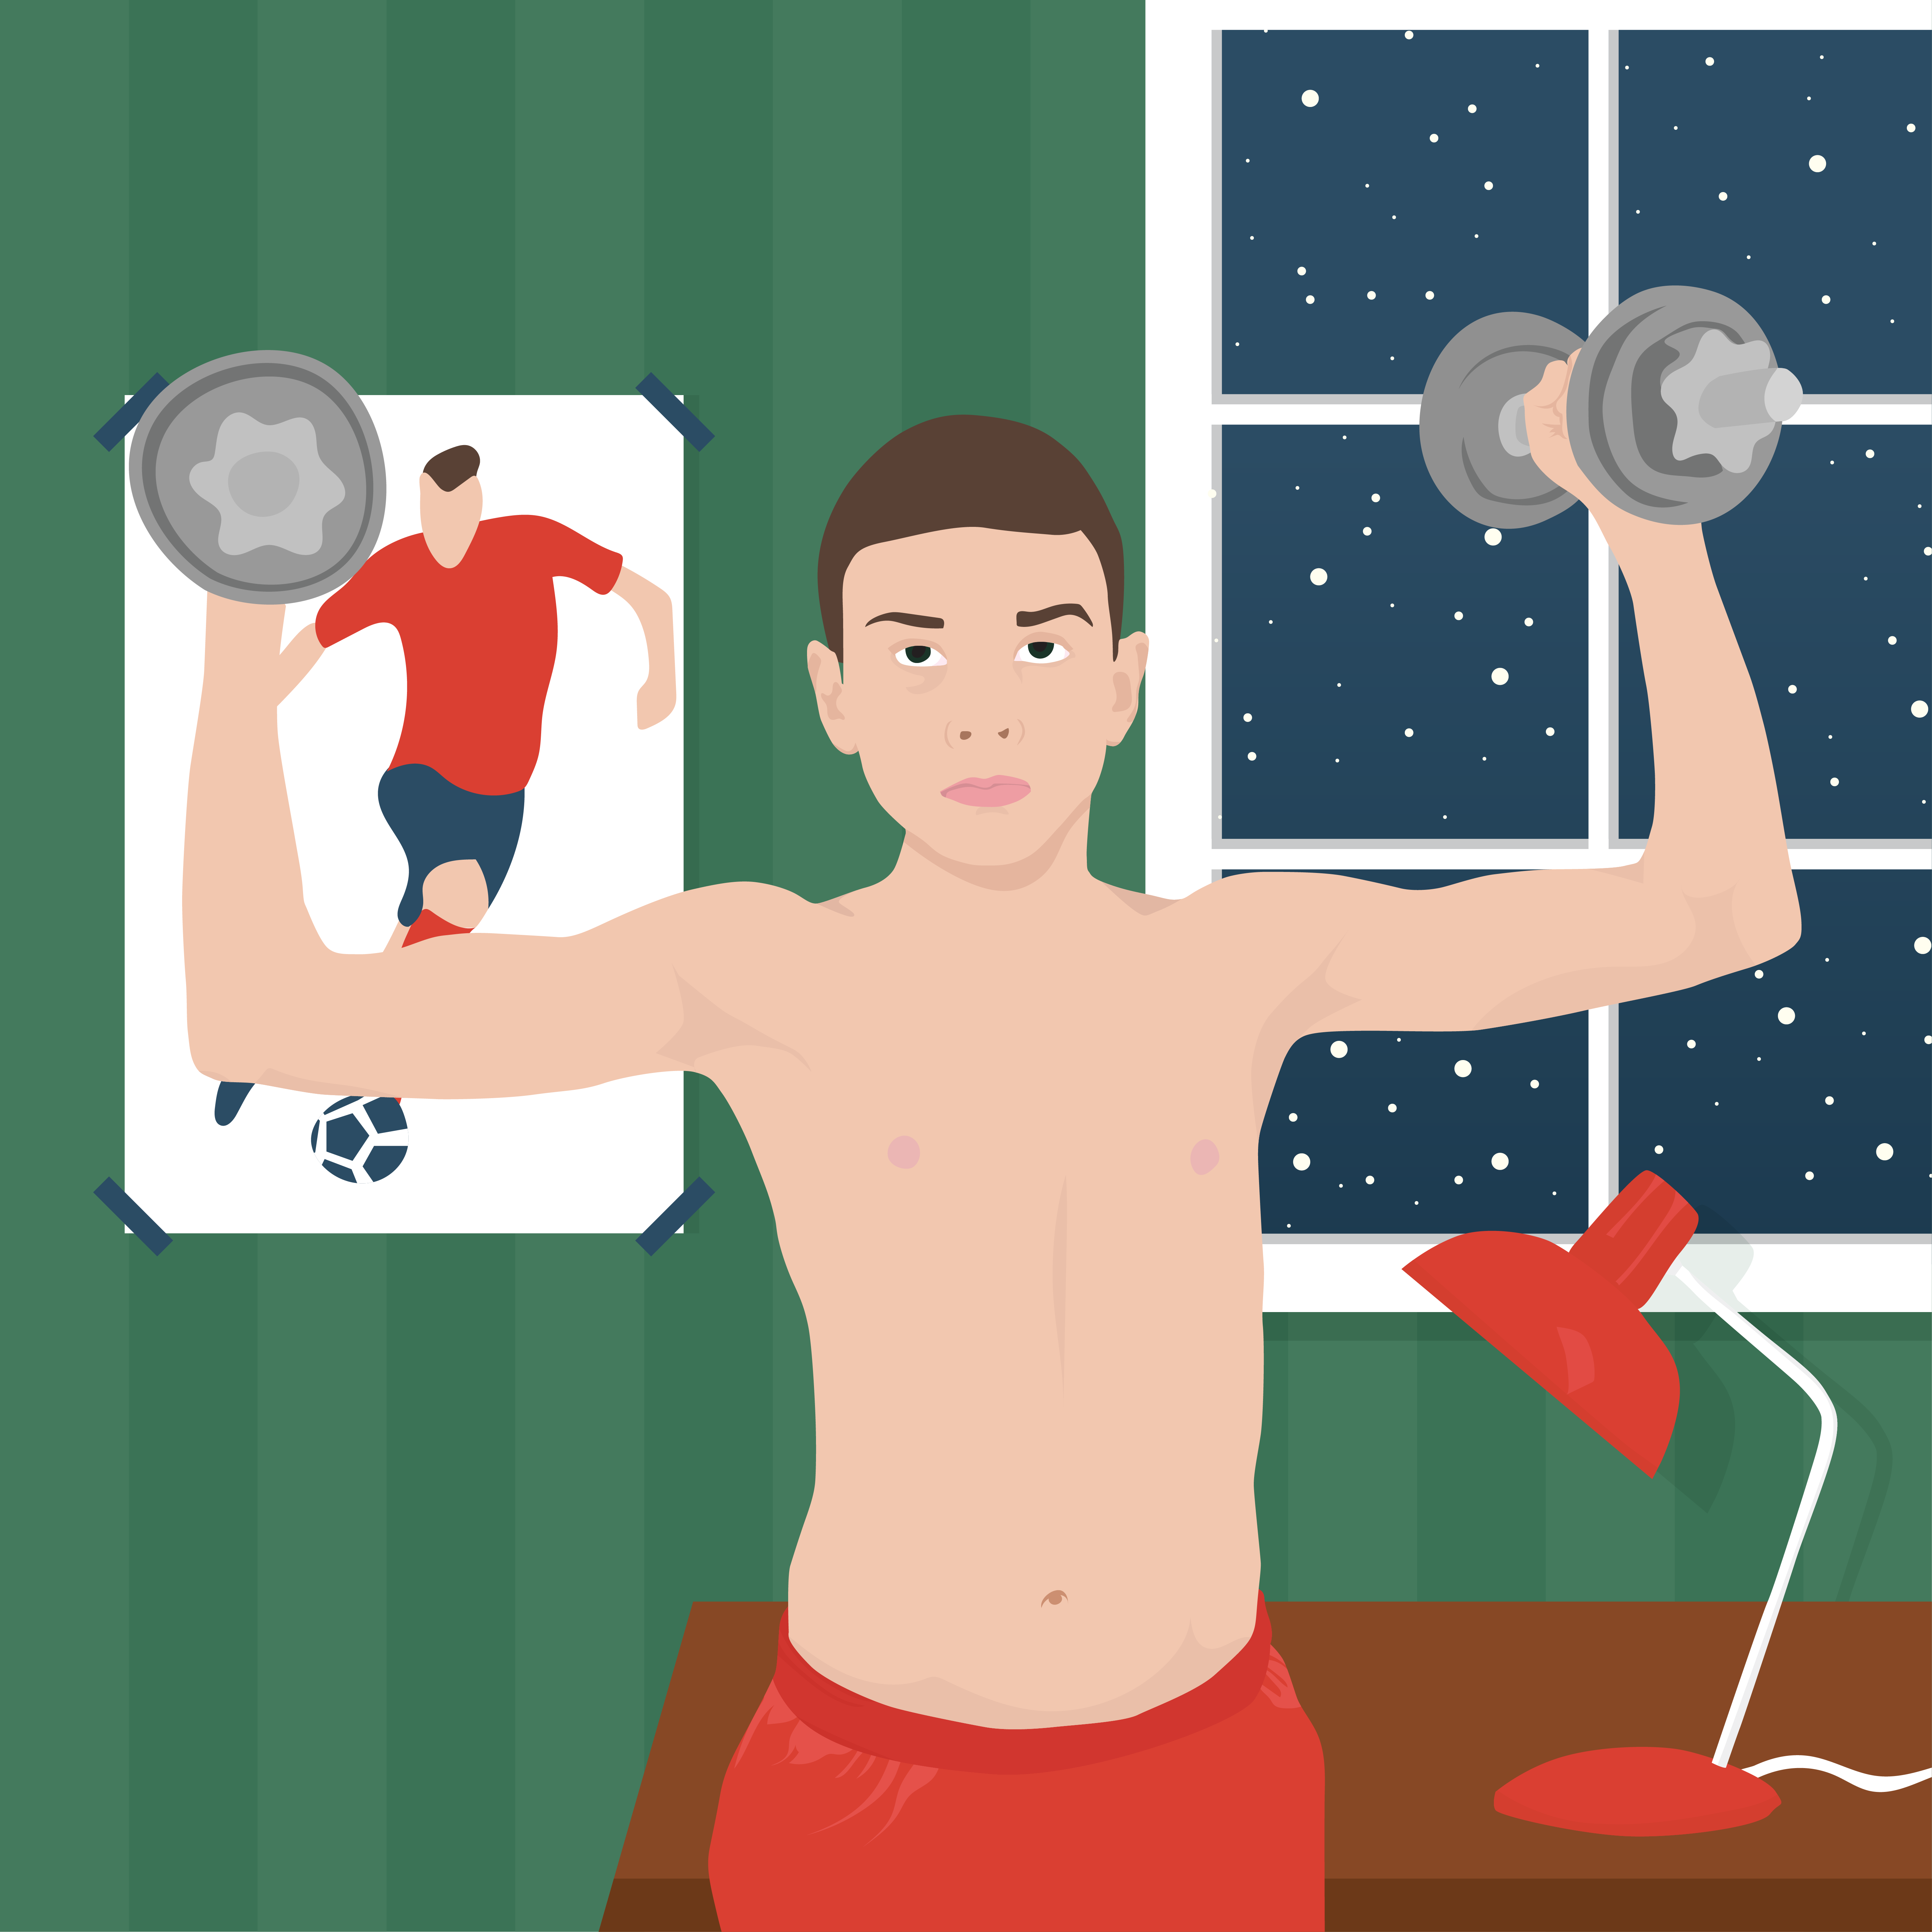 young boy lifting weights at night with poster of soccer player on wall